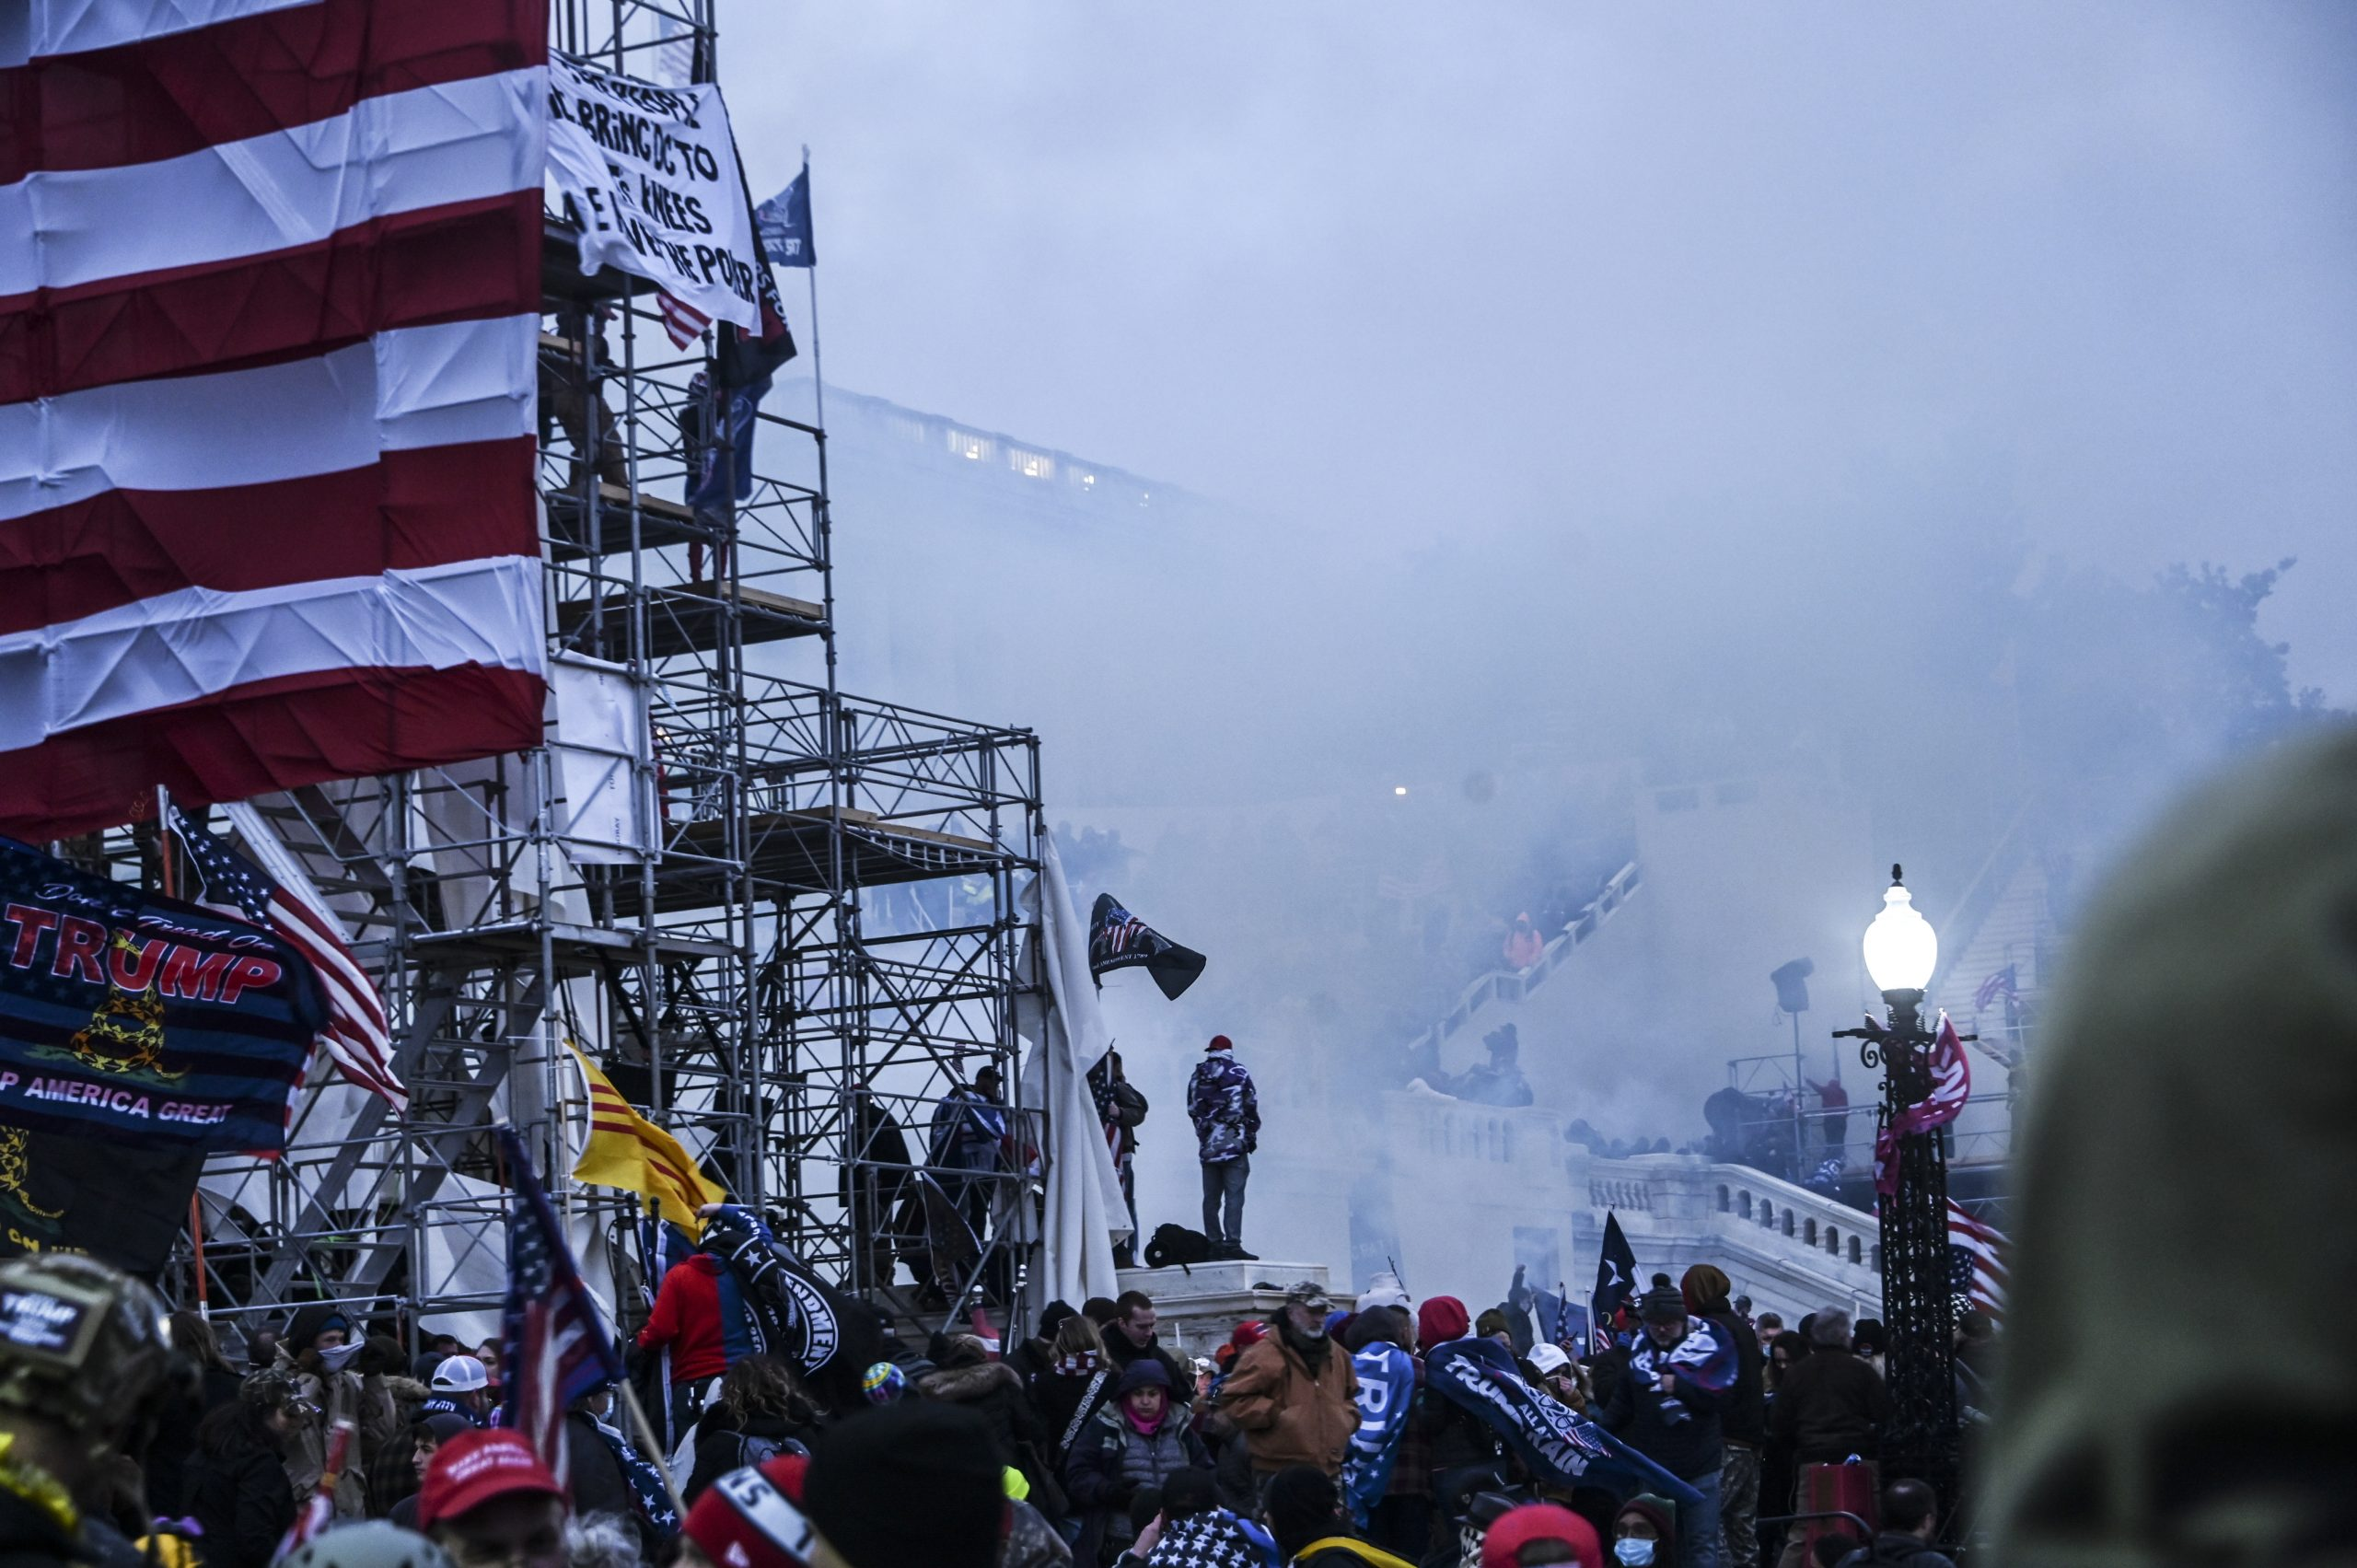 Tear gas is deployed to clear the protestors from the inauguration scaffolding on the Capitol's north side.